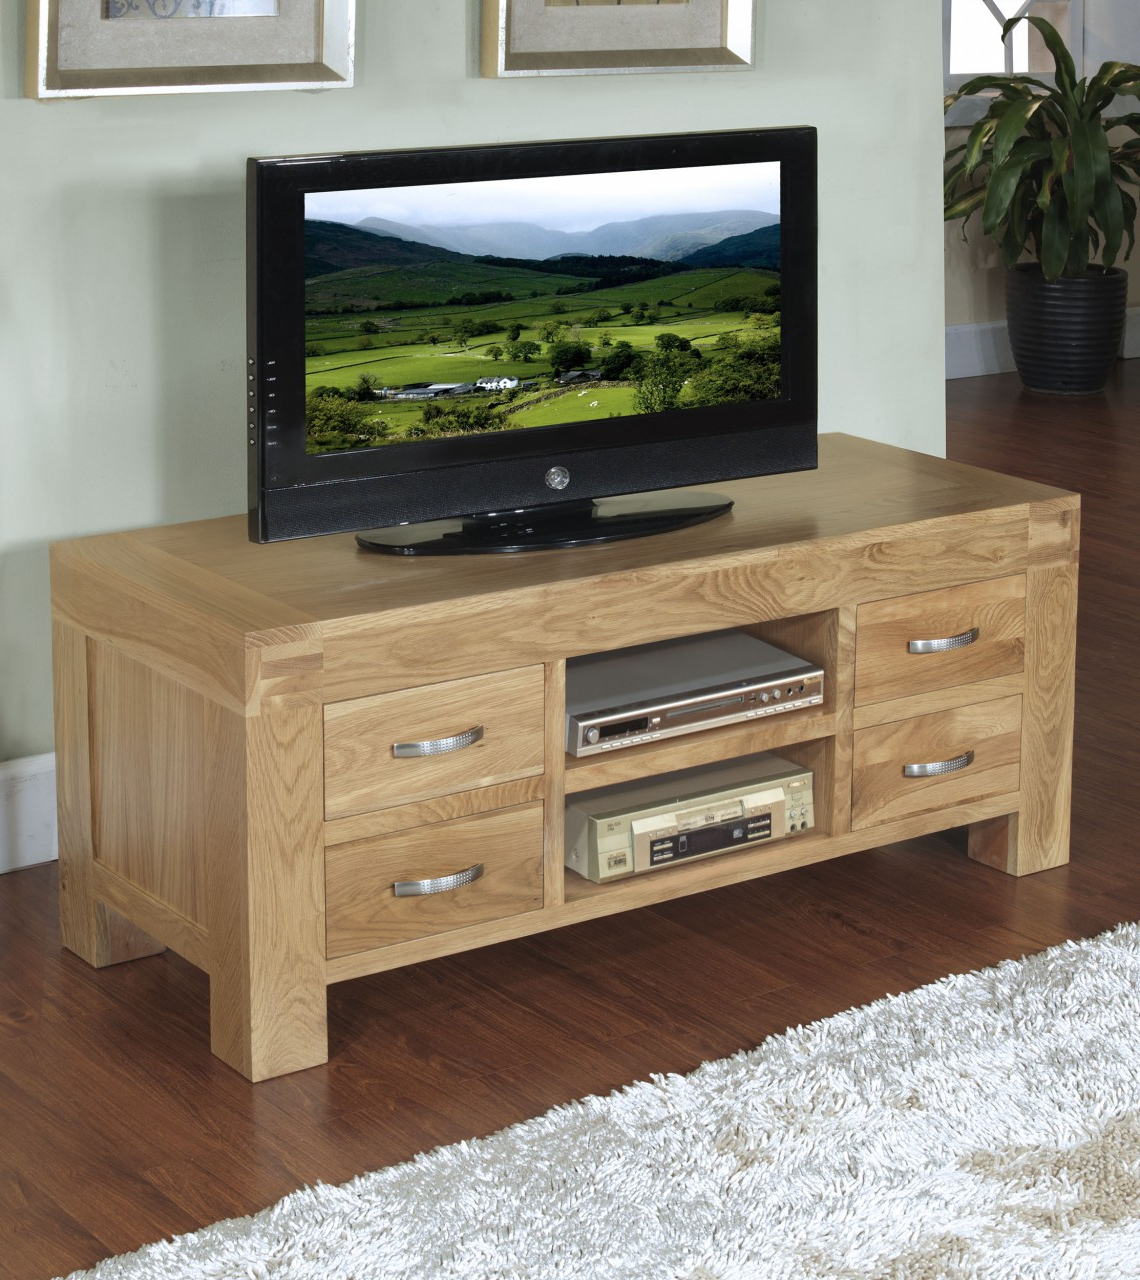 Popular Reclaimed Wood Tv Stands Natural Oak Stand Consoles For Flat Screens With Oak Tv Stands For Flat Screens (View 14 of 20)